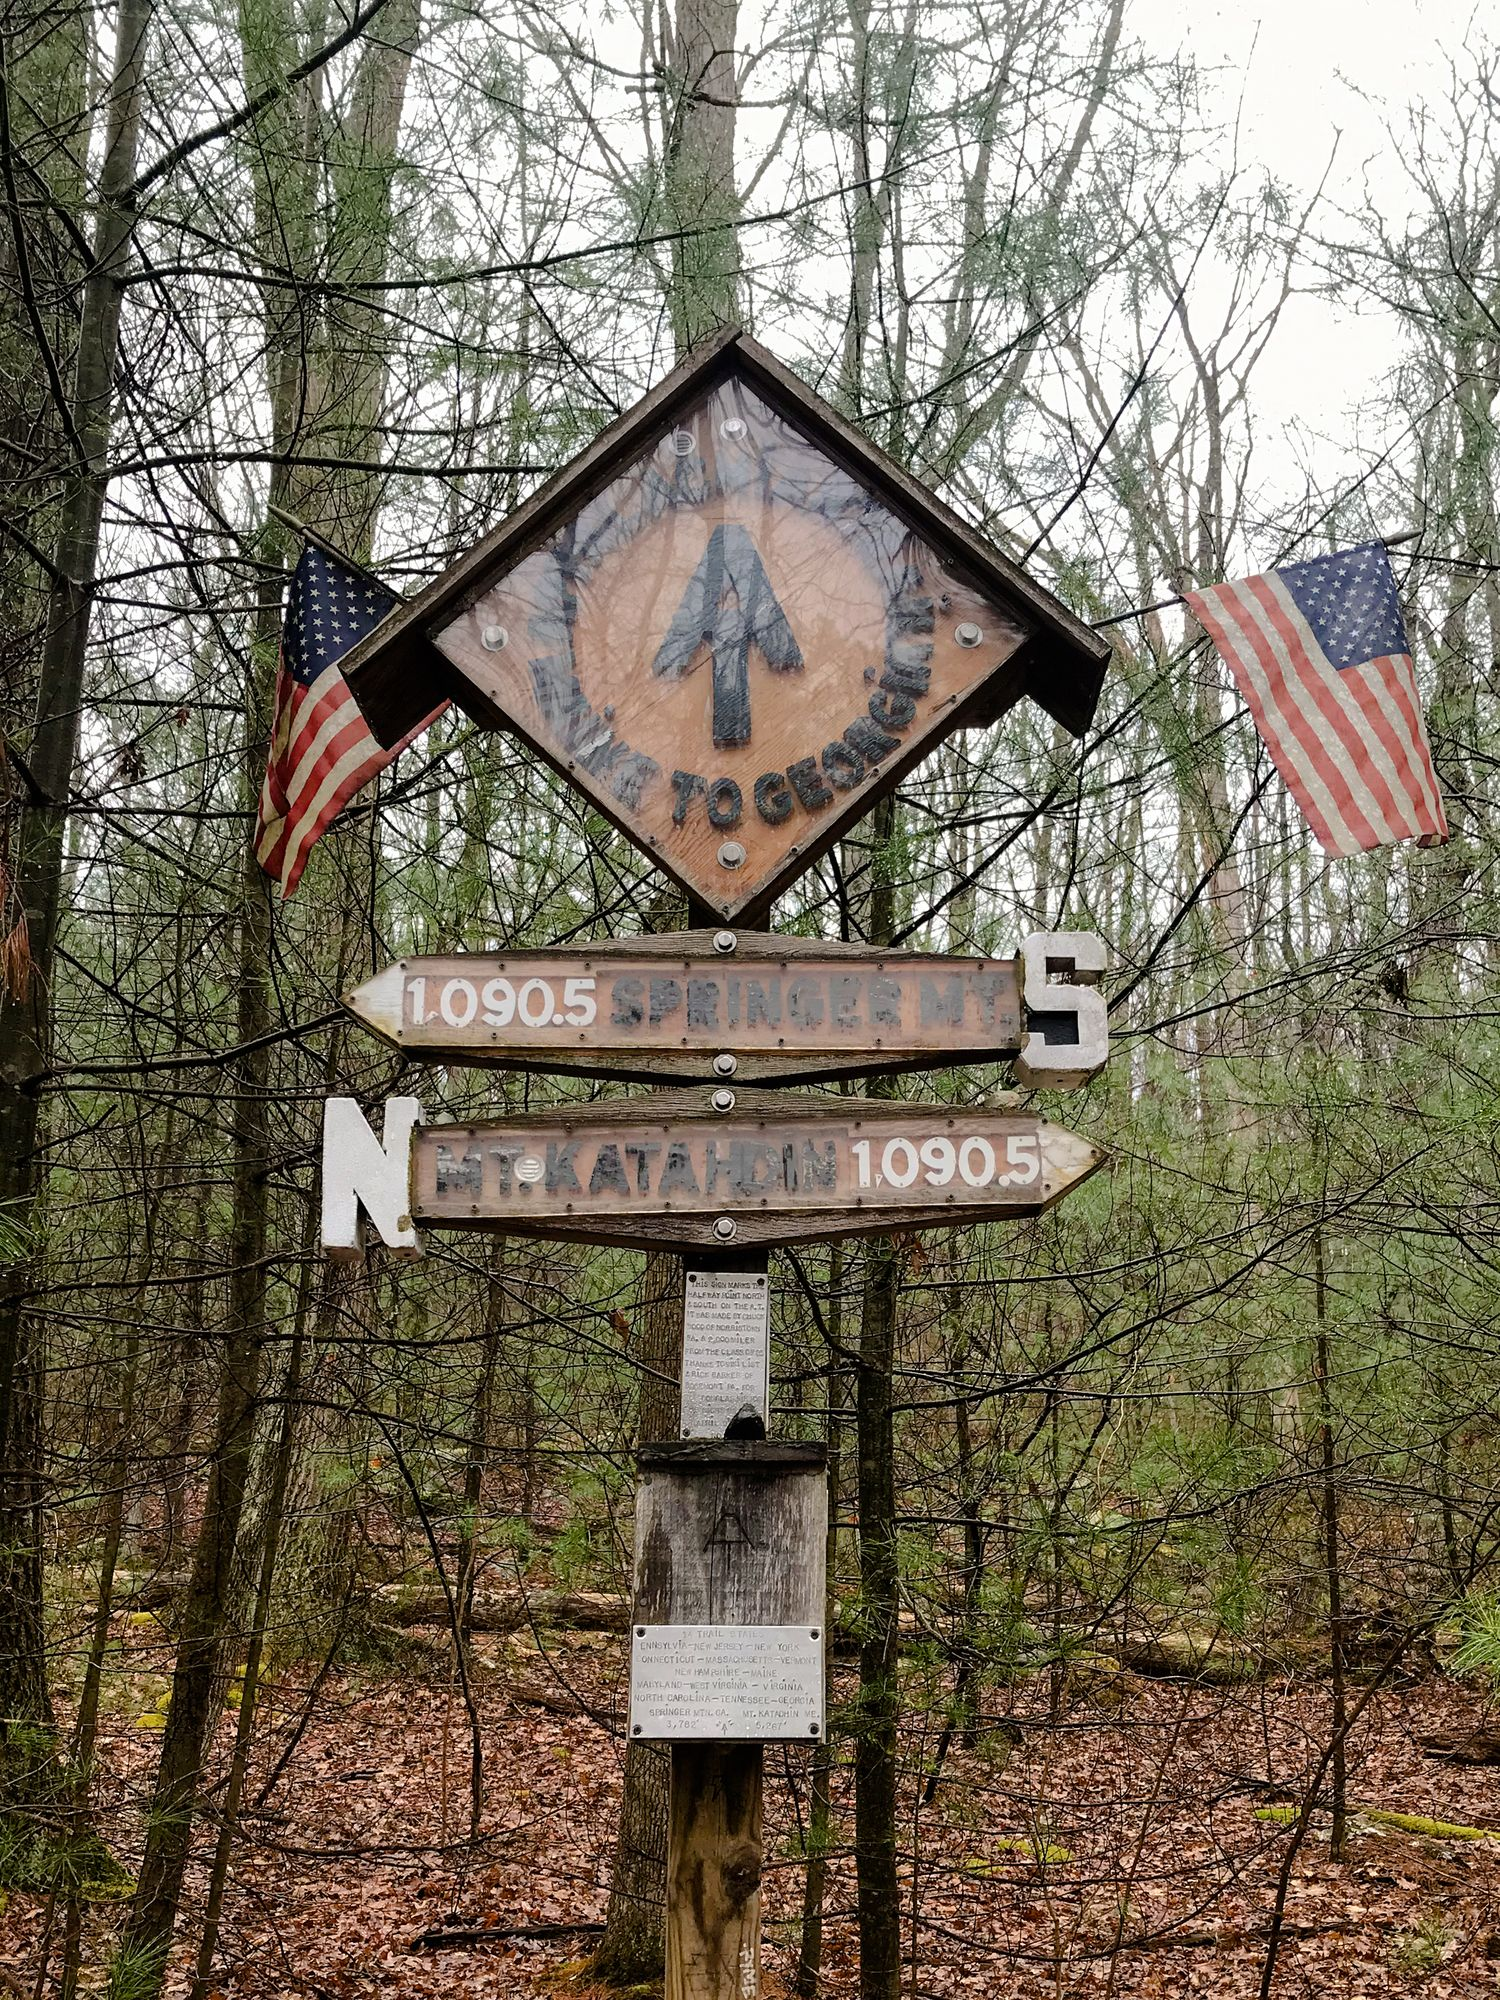 Appalachian Trail halfway point #2